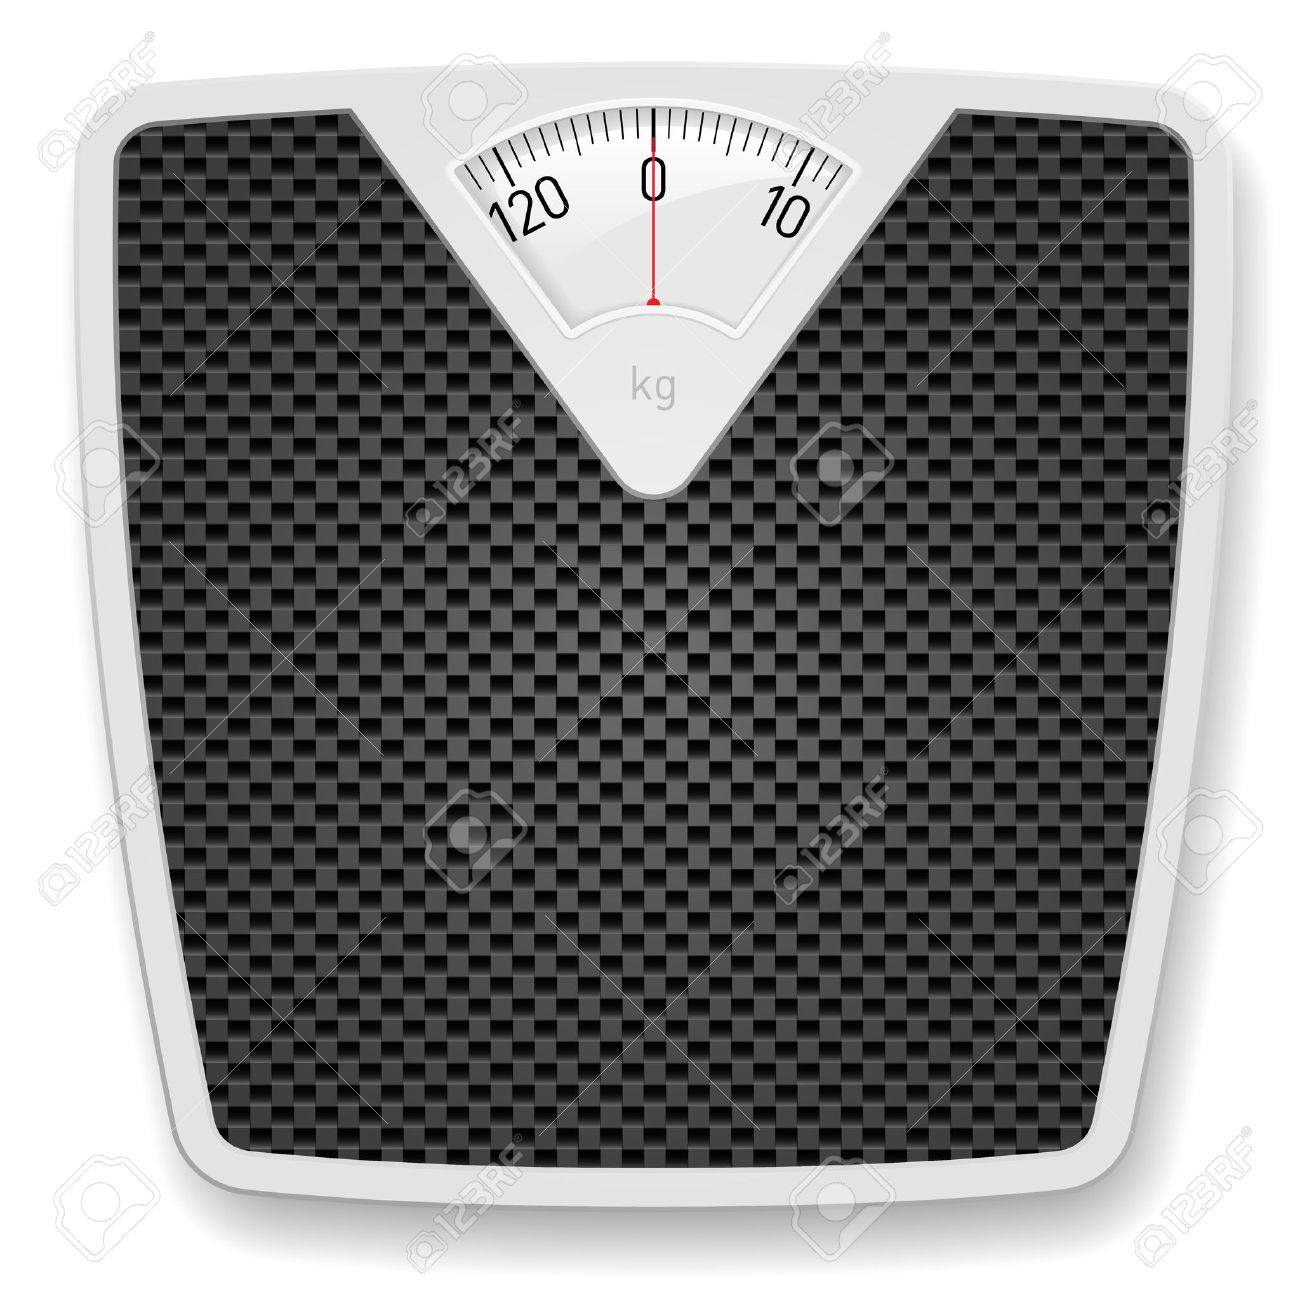 Bathroom Scale Bathroom Weight Scale Illustration On White Background